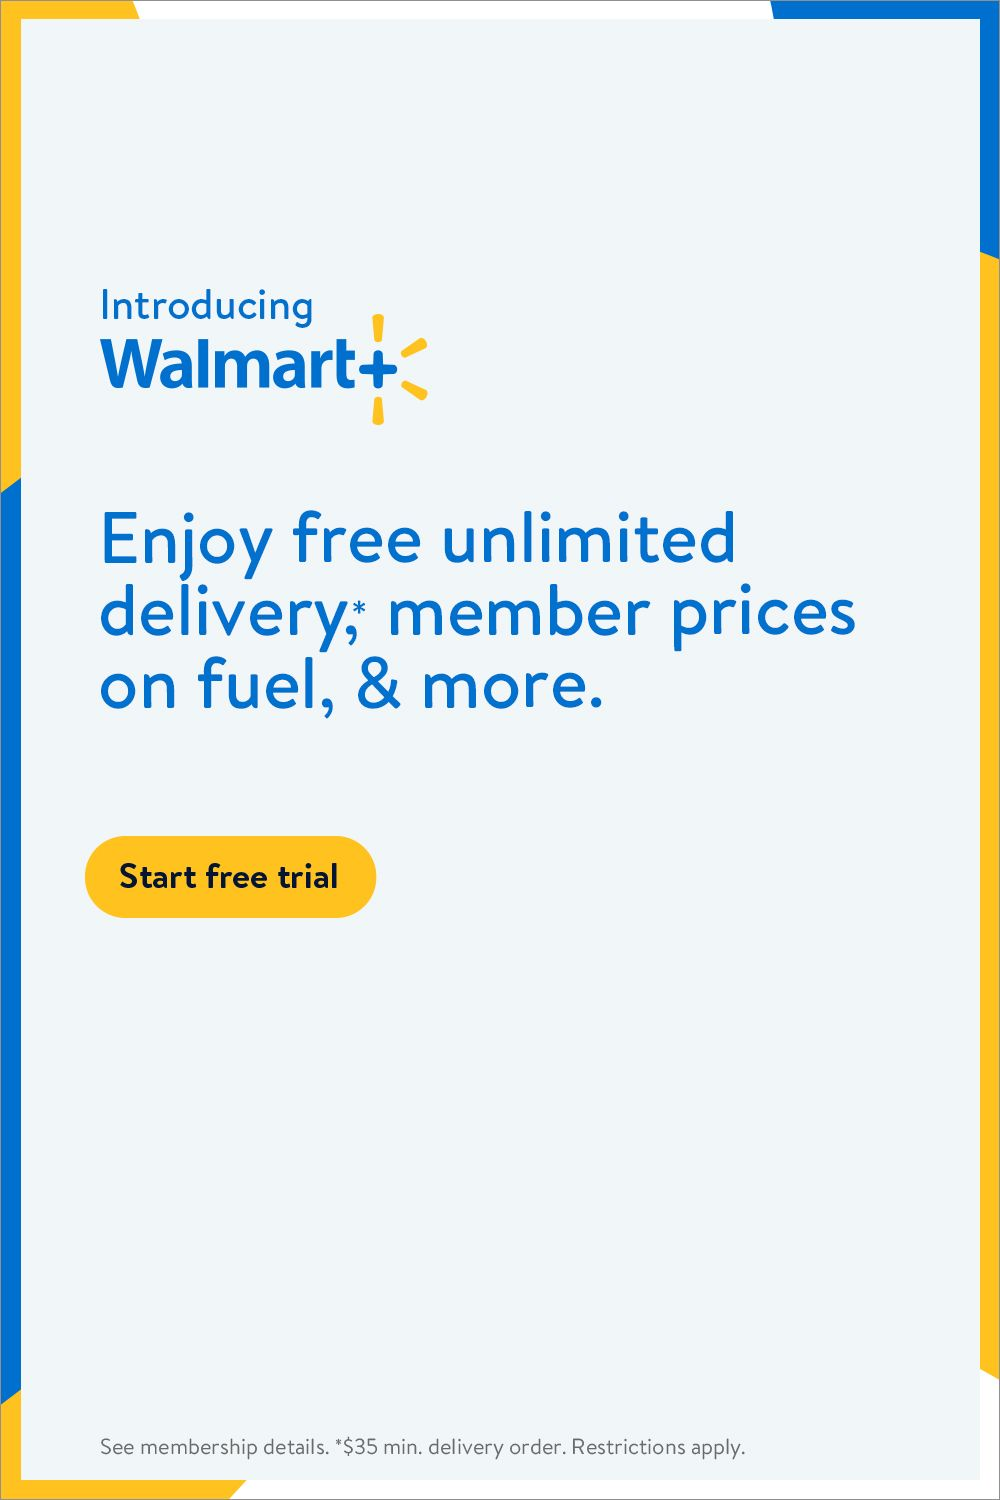 Time is money. Walmart+ saves you both.